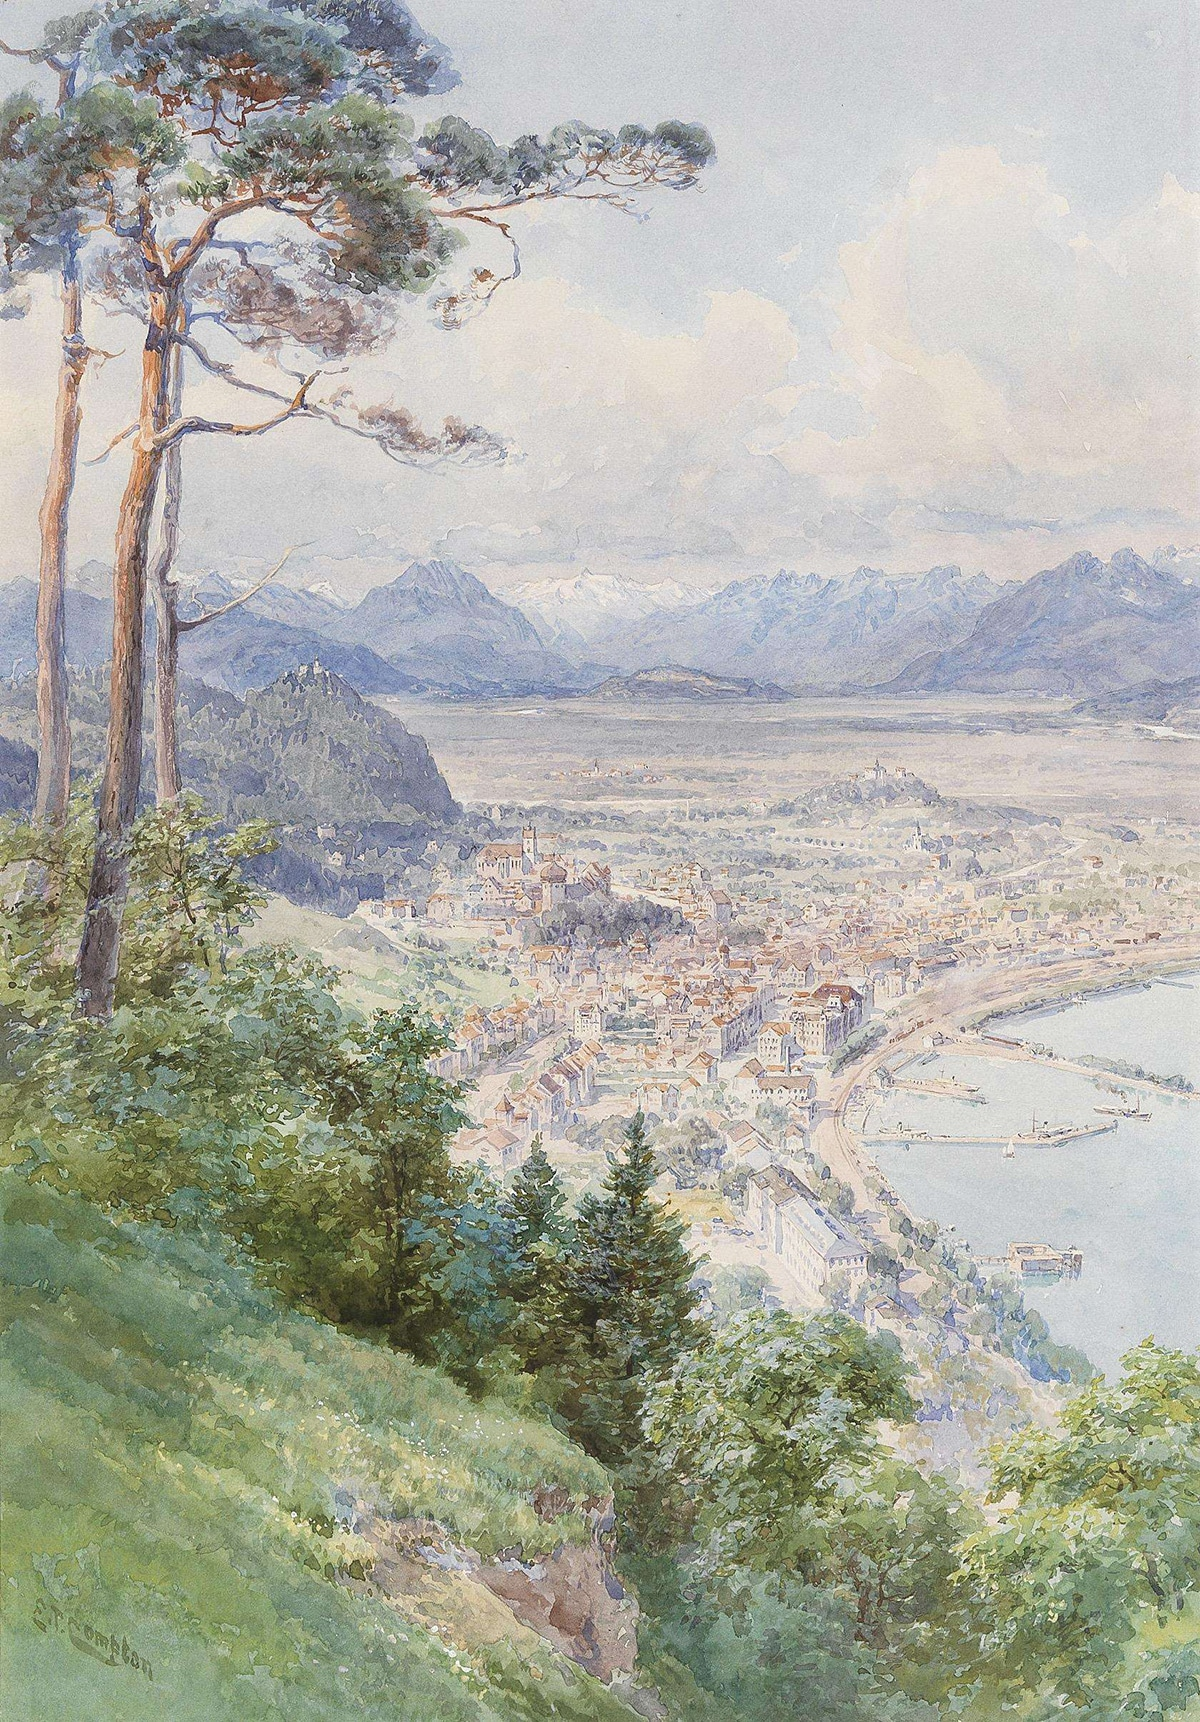 Edward Theodor Compton, A View of Bregenz and Lake Bodensee